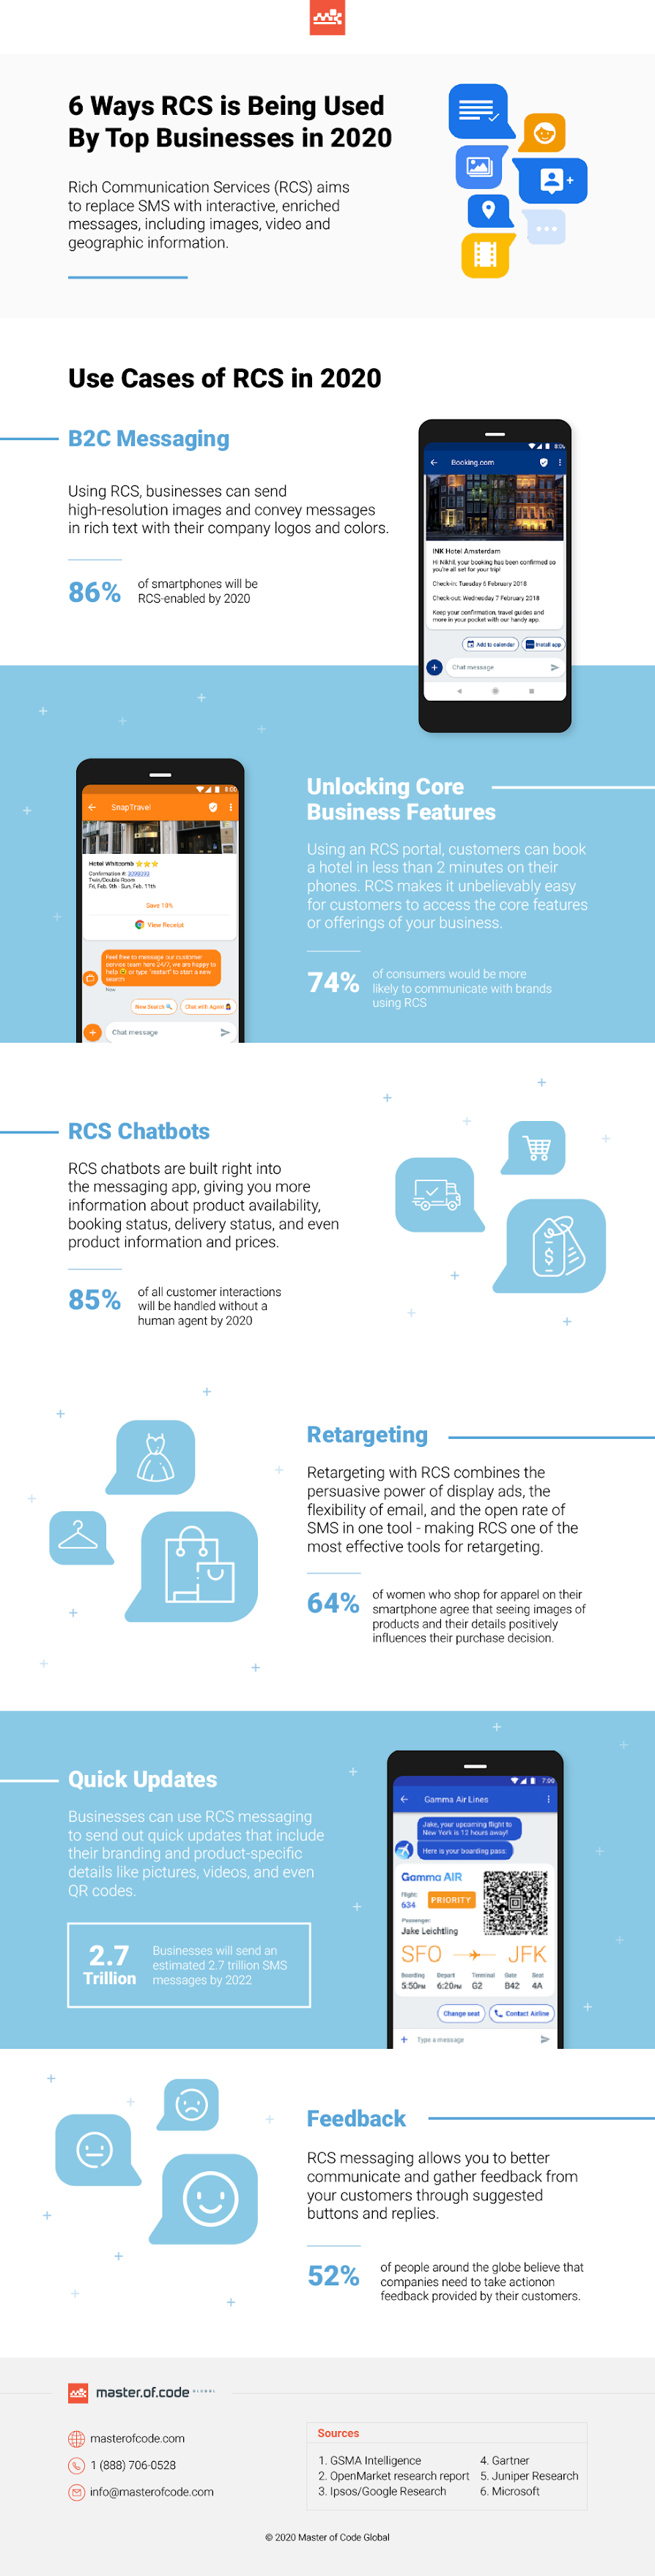 6 Ways RCS is Being Used By Top Businesses in 2020 #infographic